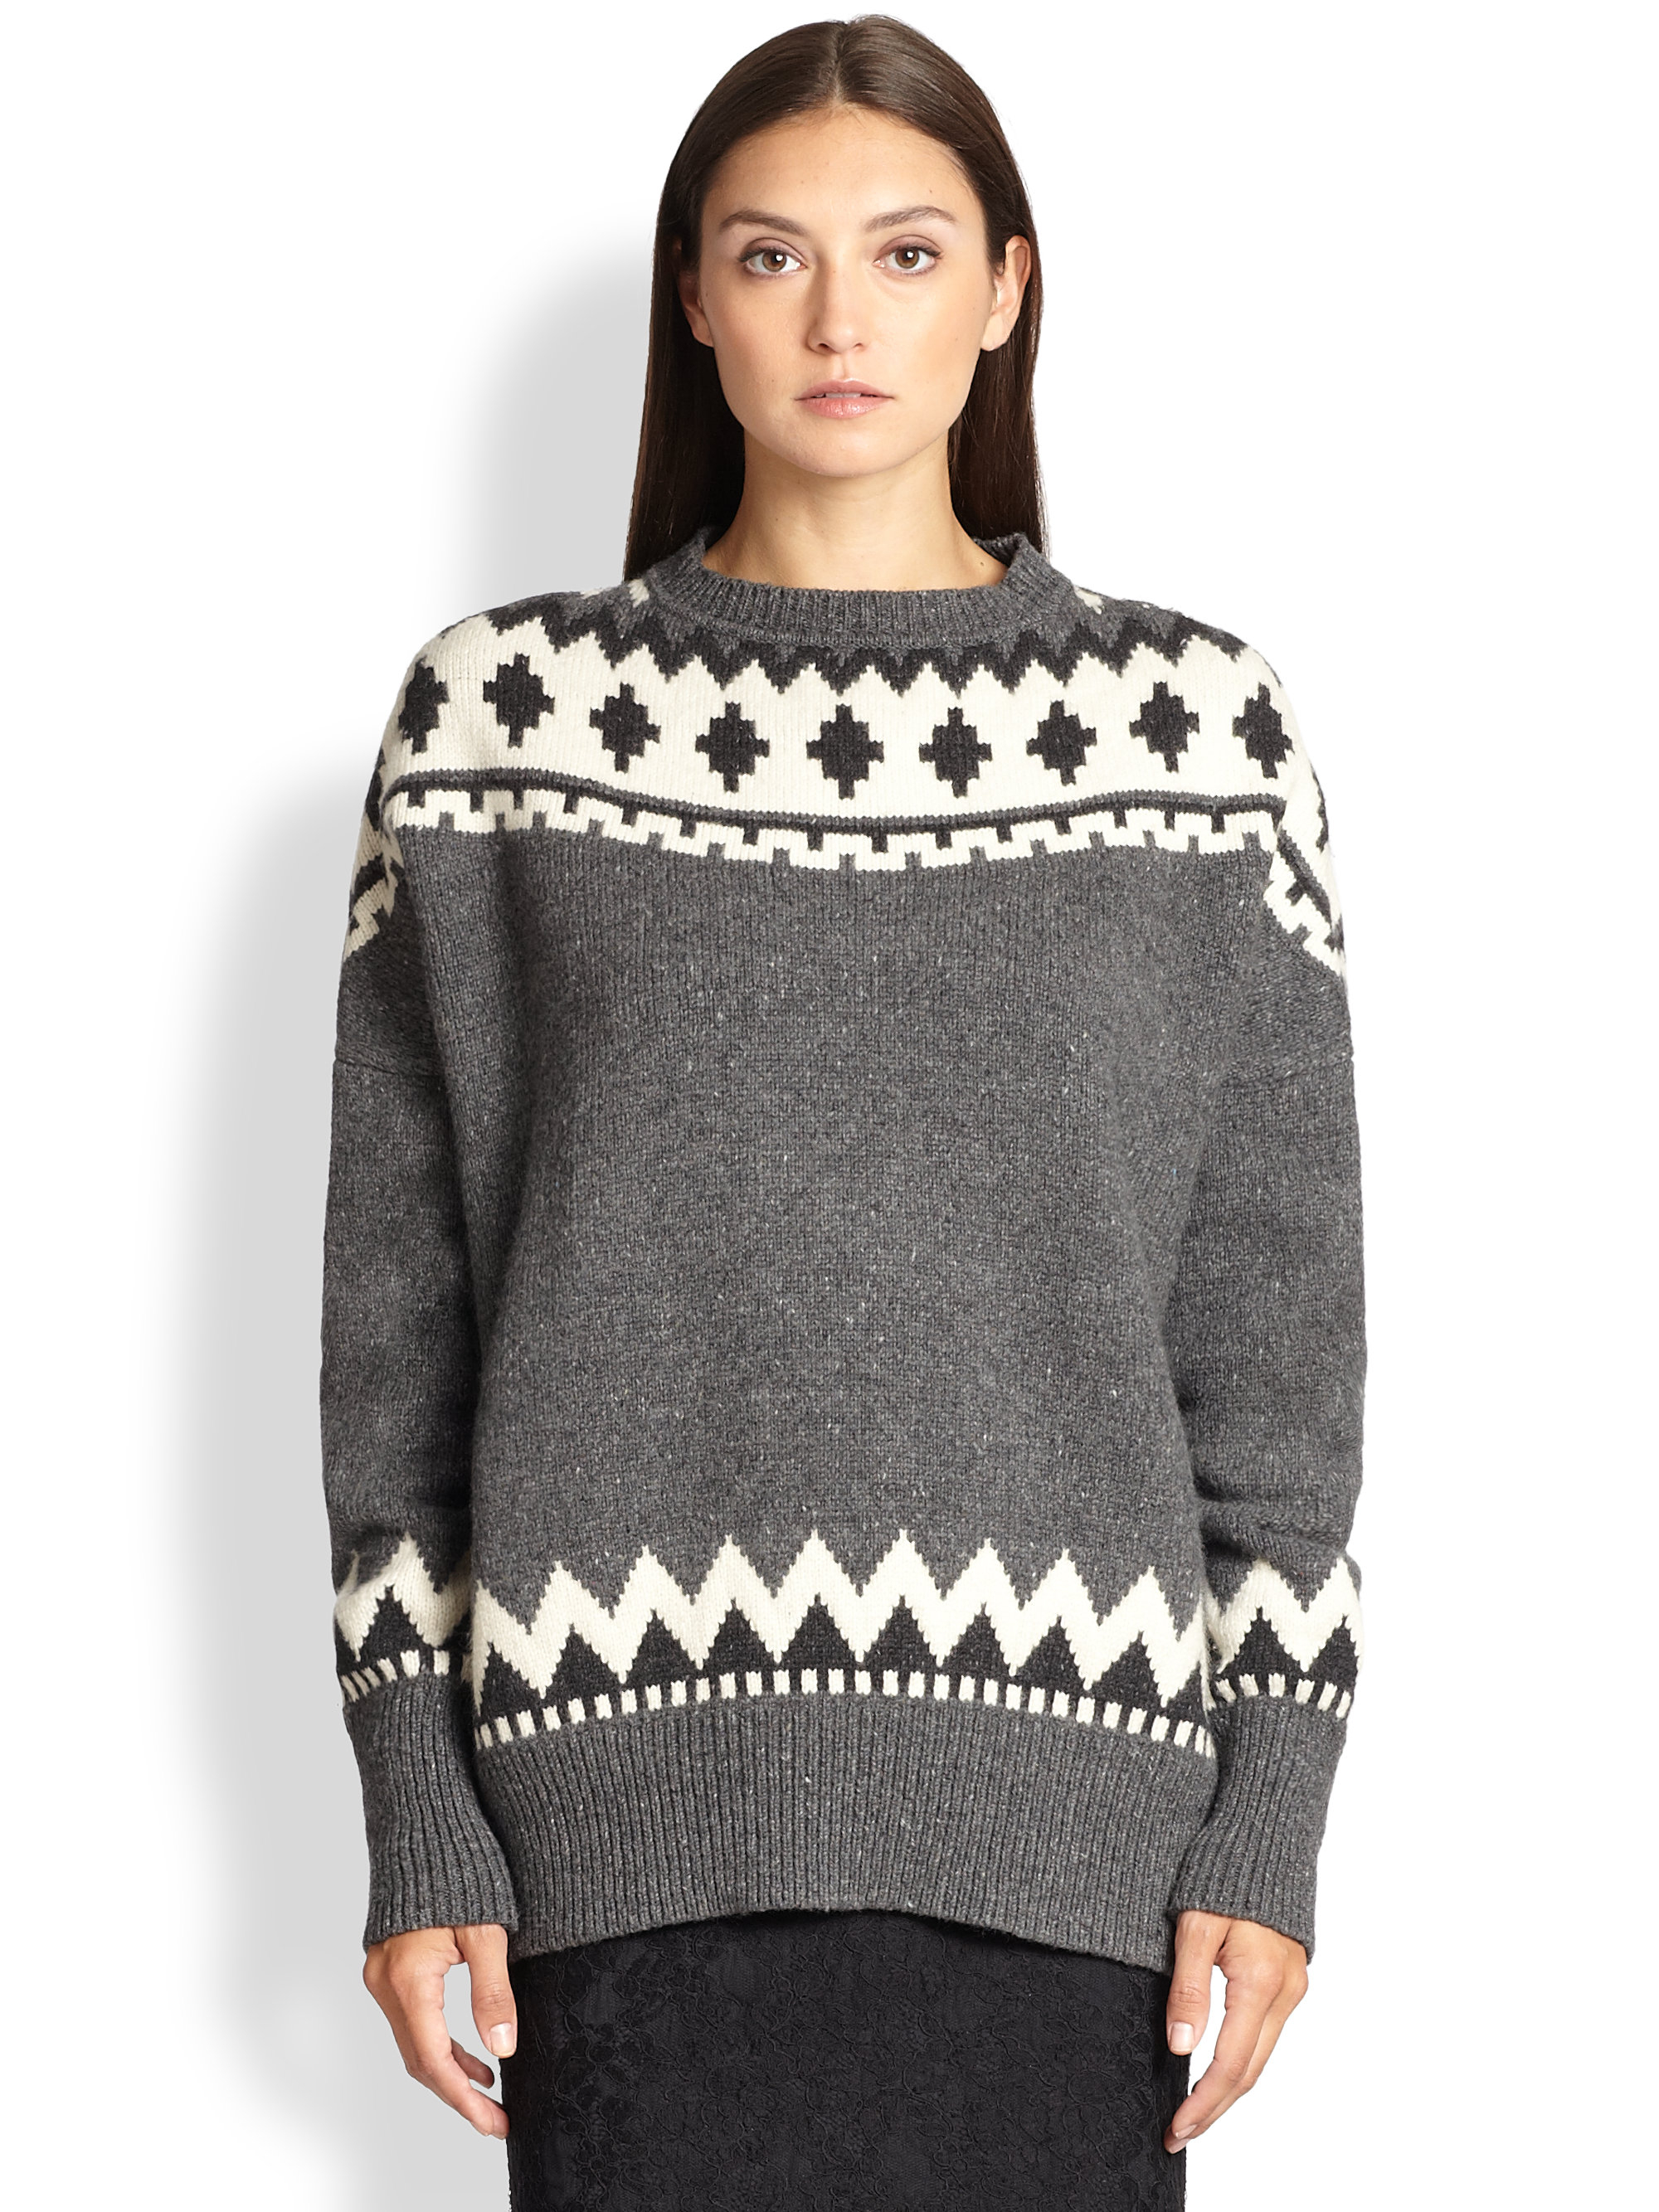 Adam lippes Wool & Cashmere Fair Isle Sweater in Gray | Lyst